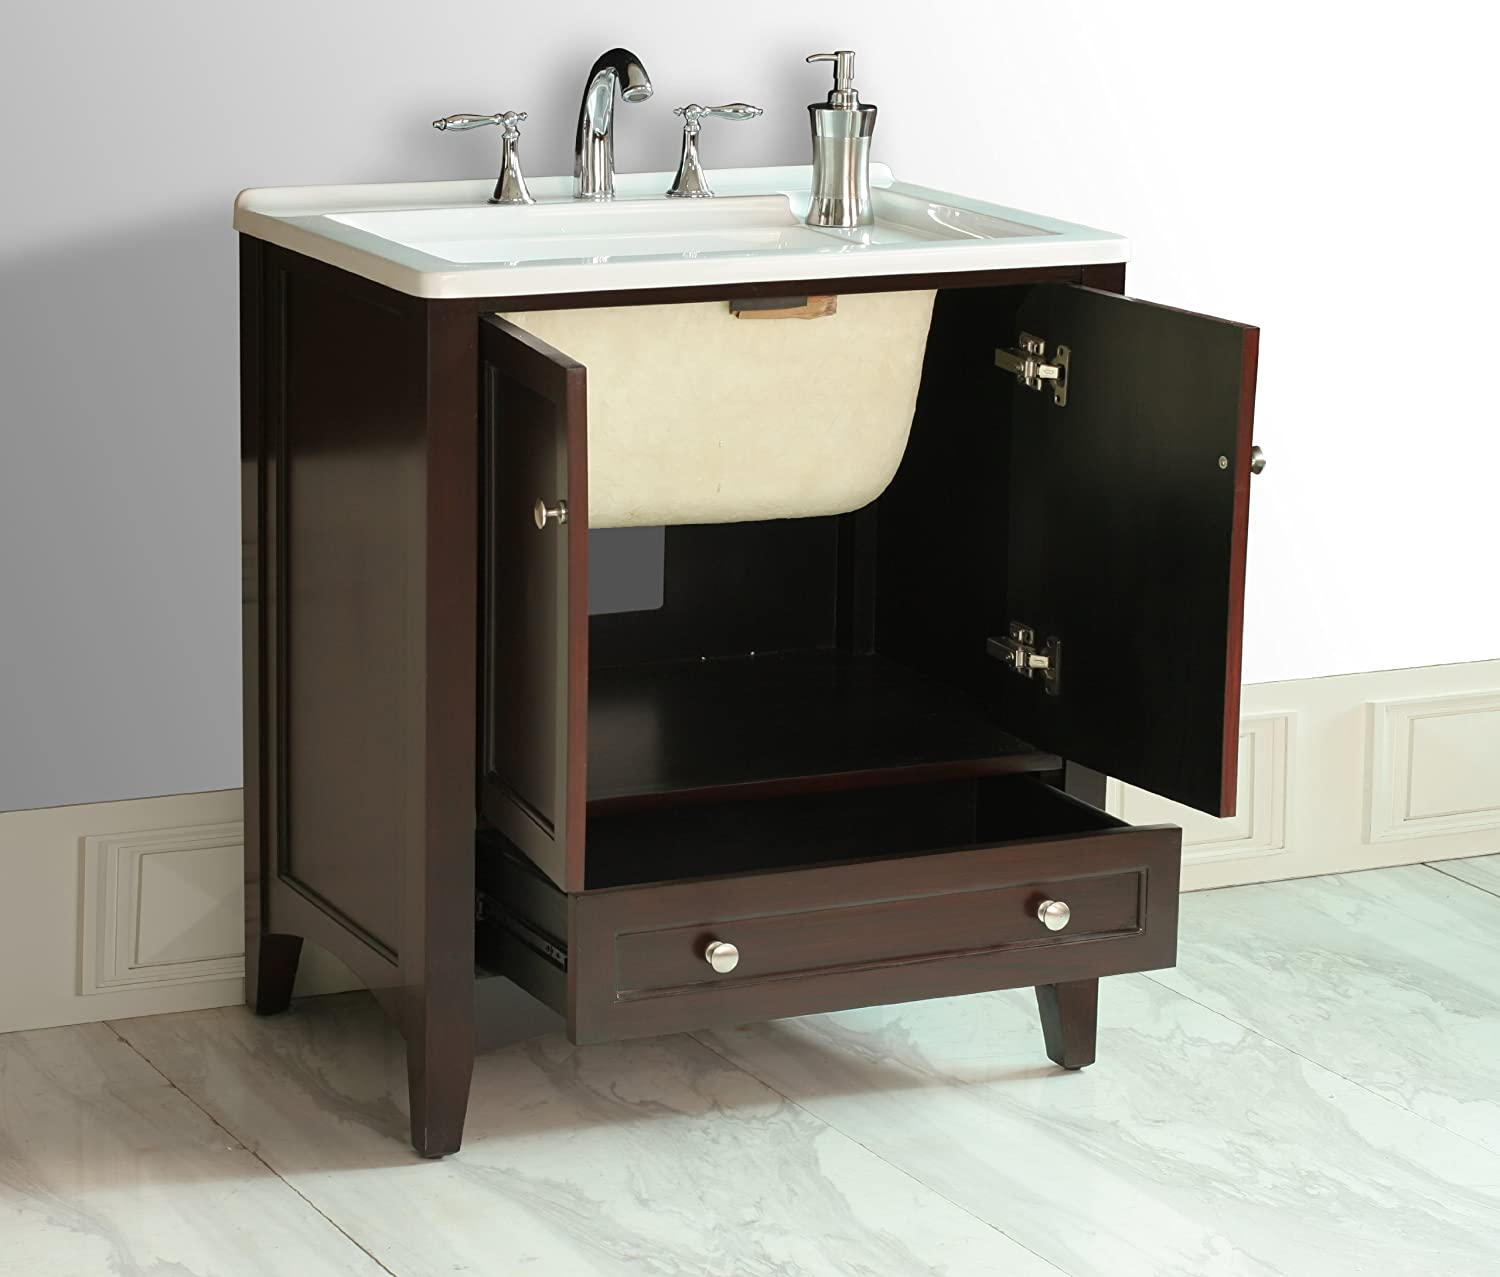 Stufurhome GM Y01 30 5 Inch Manhattan Single Laundry Vanity in Dark  Expresso Finish with Acrylic Sink   Bathroom Vanities   Amazon comStufurhome GM Y01 30 5 Inch Manhattan Single Laundry Vanity in  . 30 Bathroom Vanity With Top. Home Design Ideas